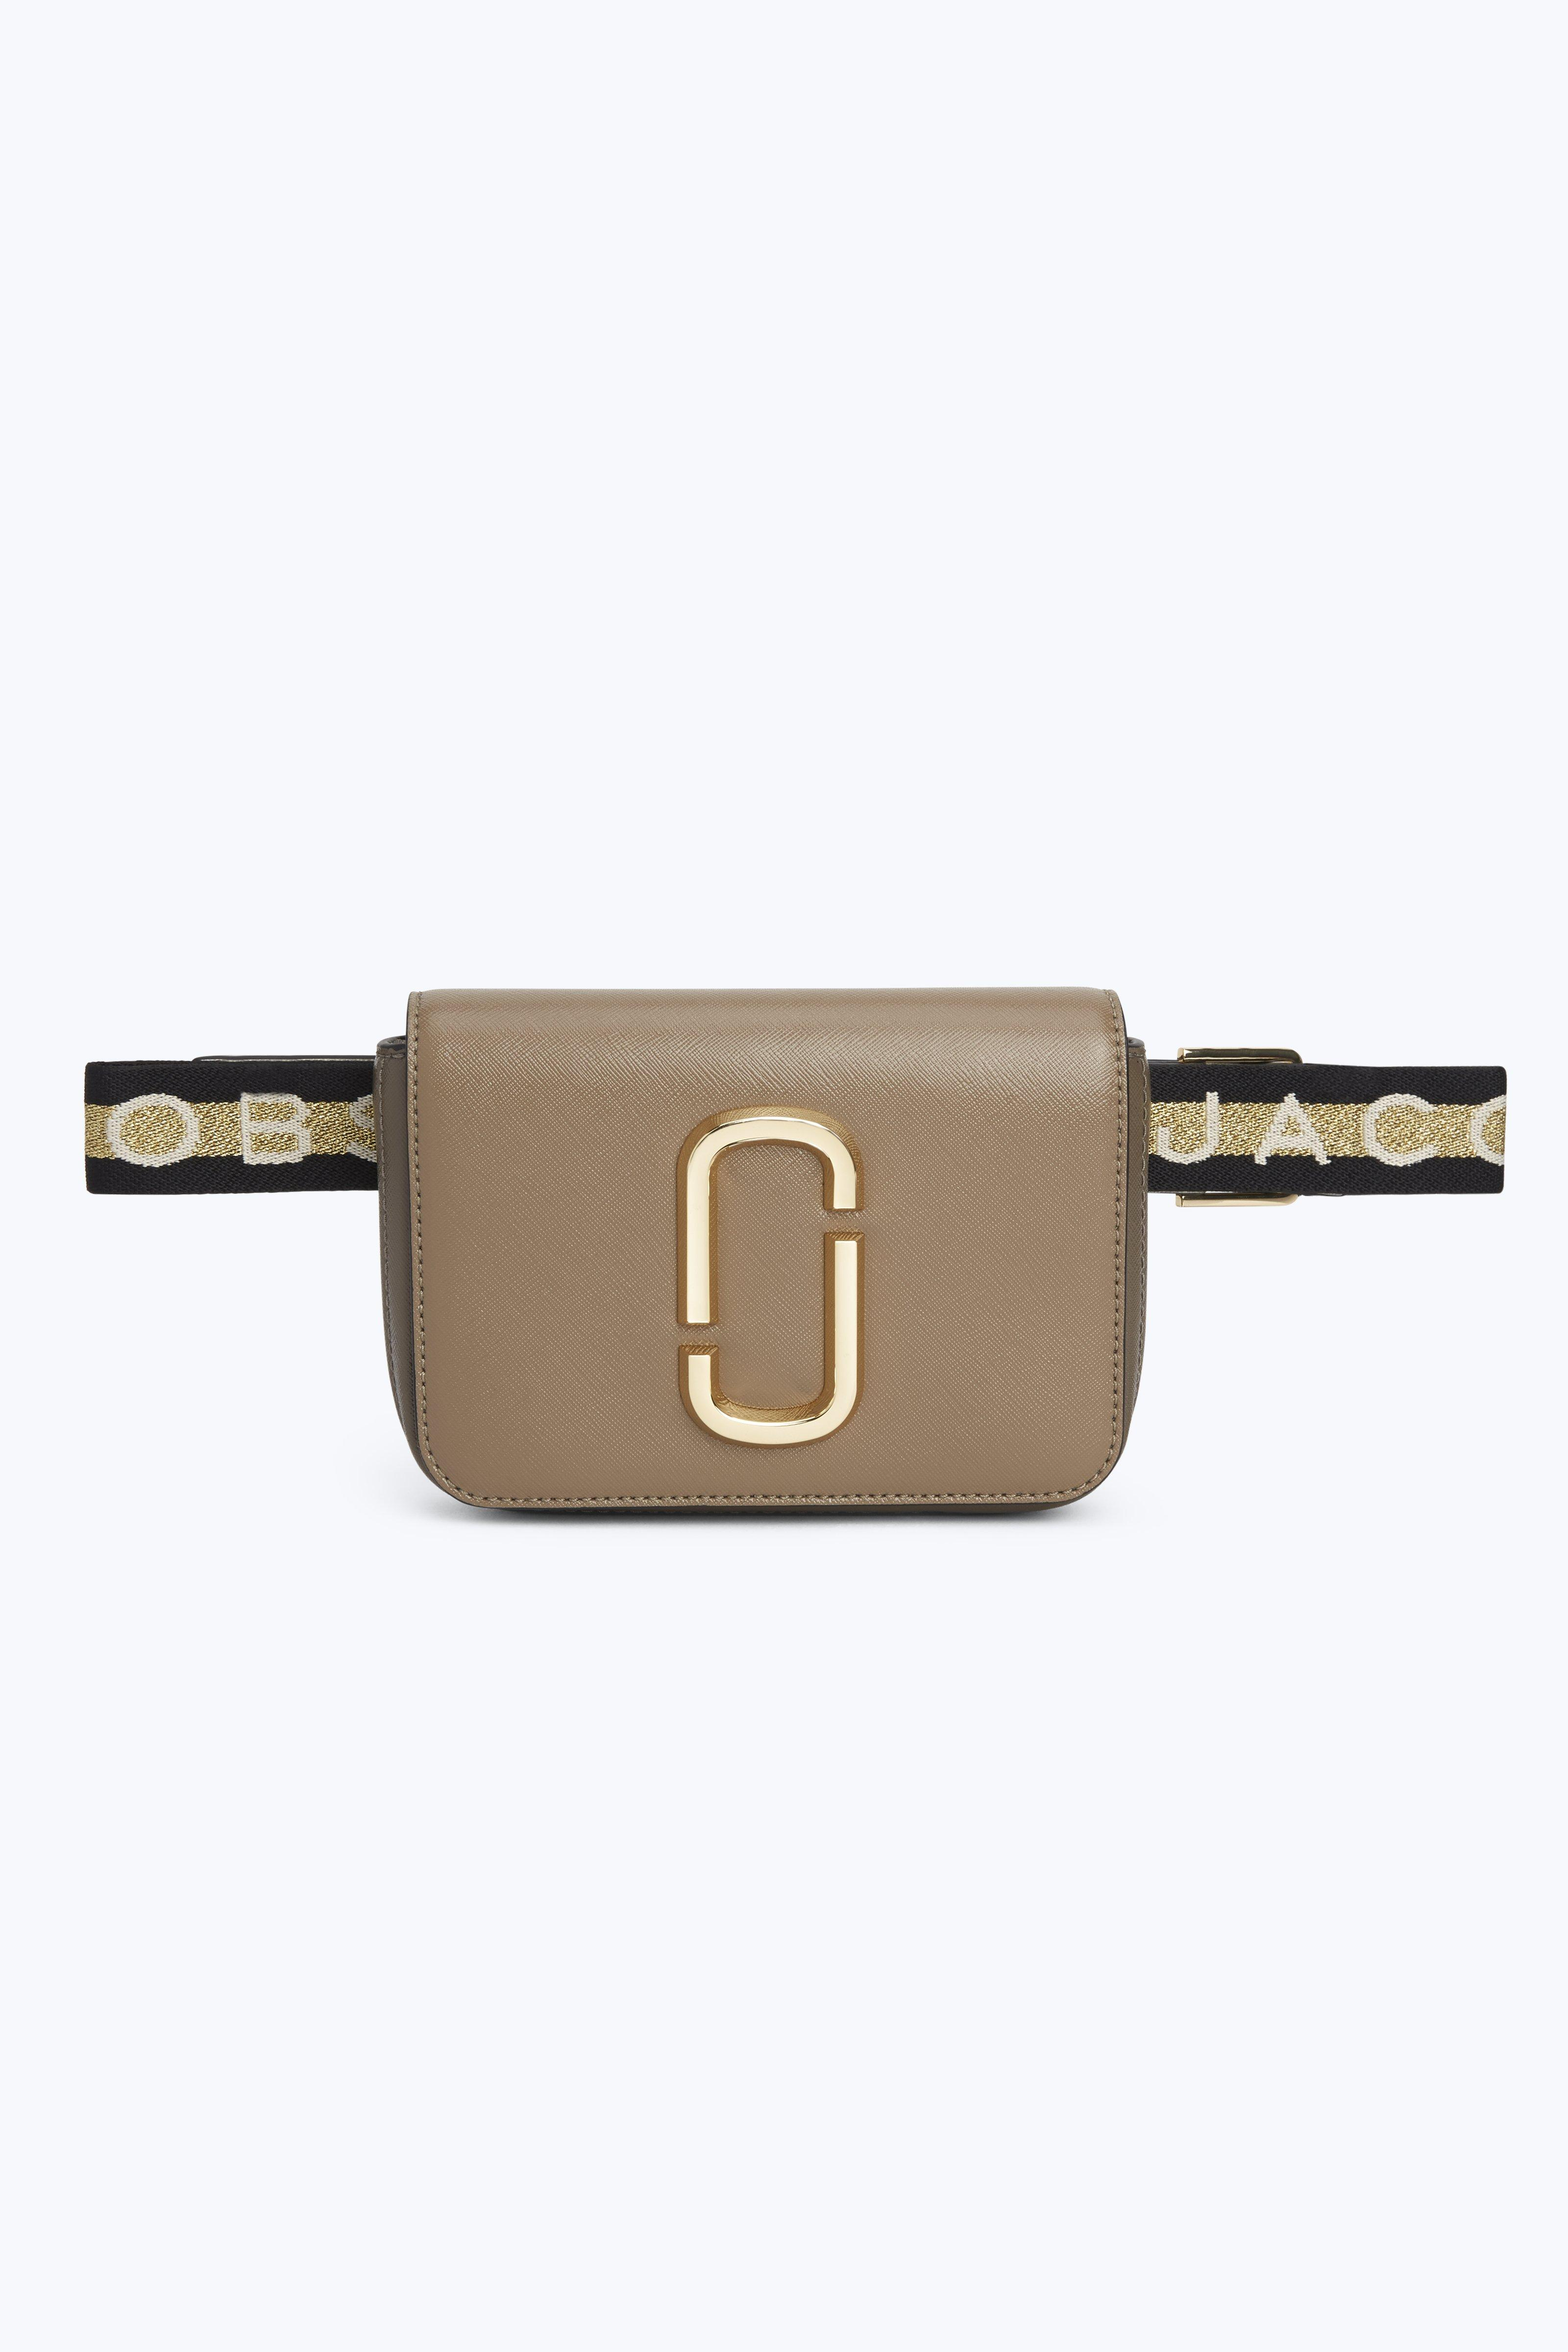 Hip Shot Convertible Leather Belt Bag - Grey in French Grey Multi